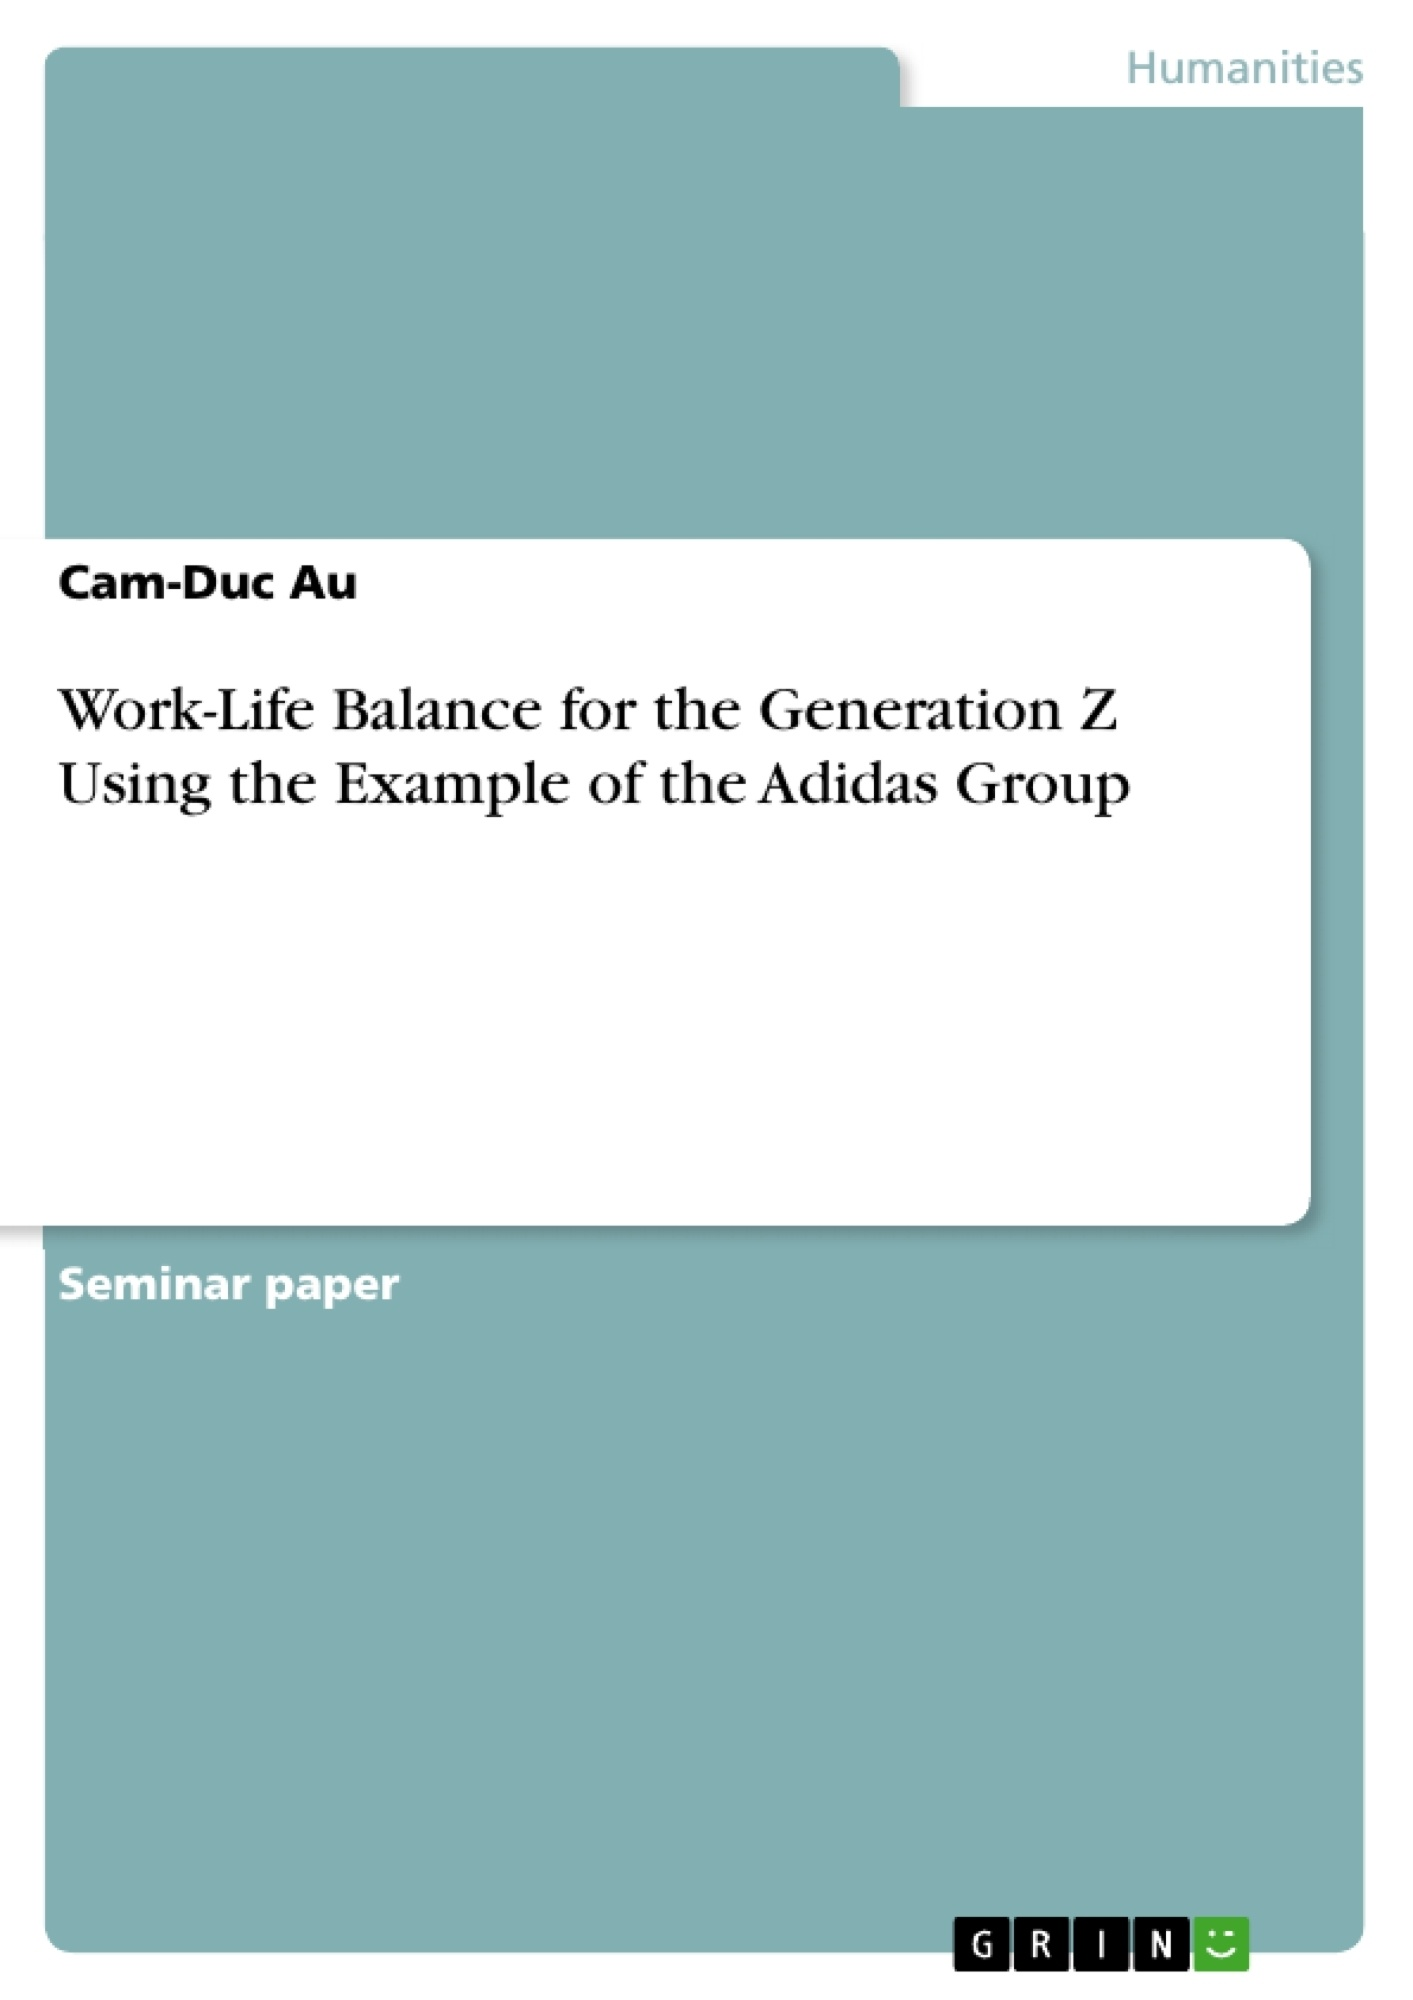 Title: Work-Life Balance for the Generation Z Using the Example of the Adidas Group